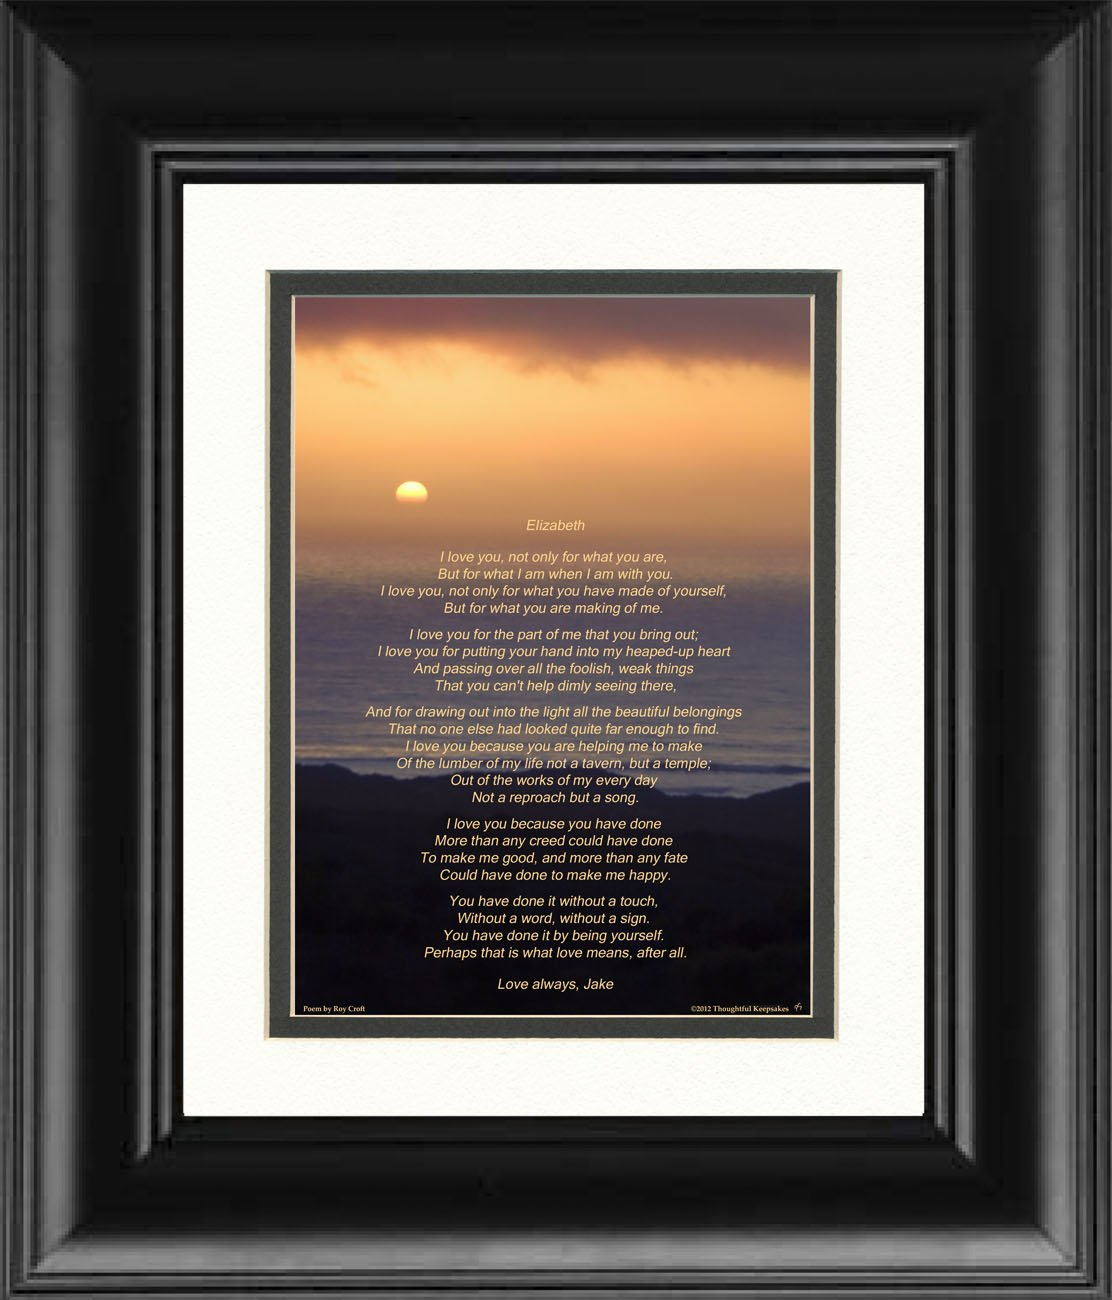 Amazon framed personalized gift for husband wife boyfriend or amazon framed personalized gift for husband wife boyfriend or girlfriend ocean sunset photo with i love you poem by roy croft 8x10 double matted solutioingenieria Gallery